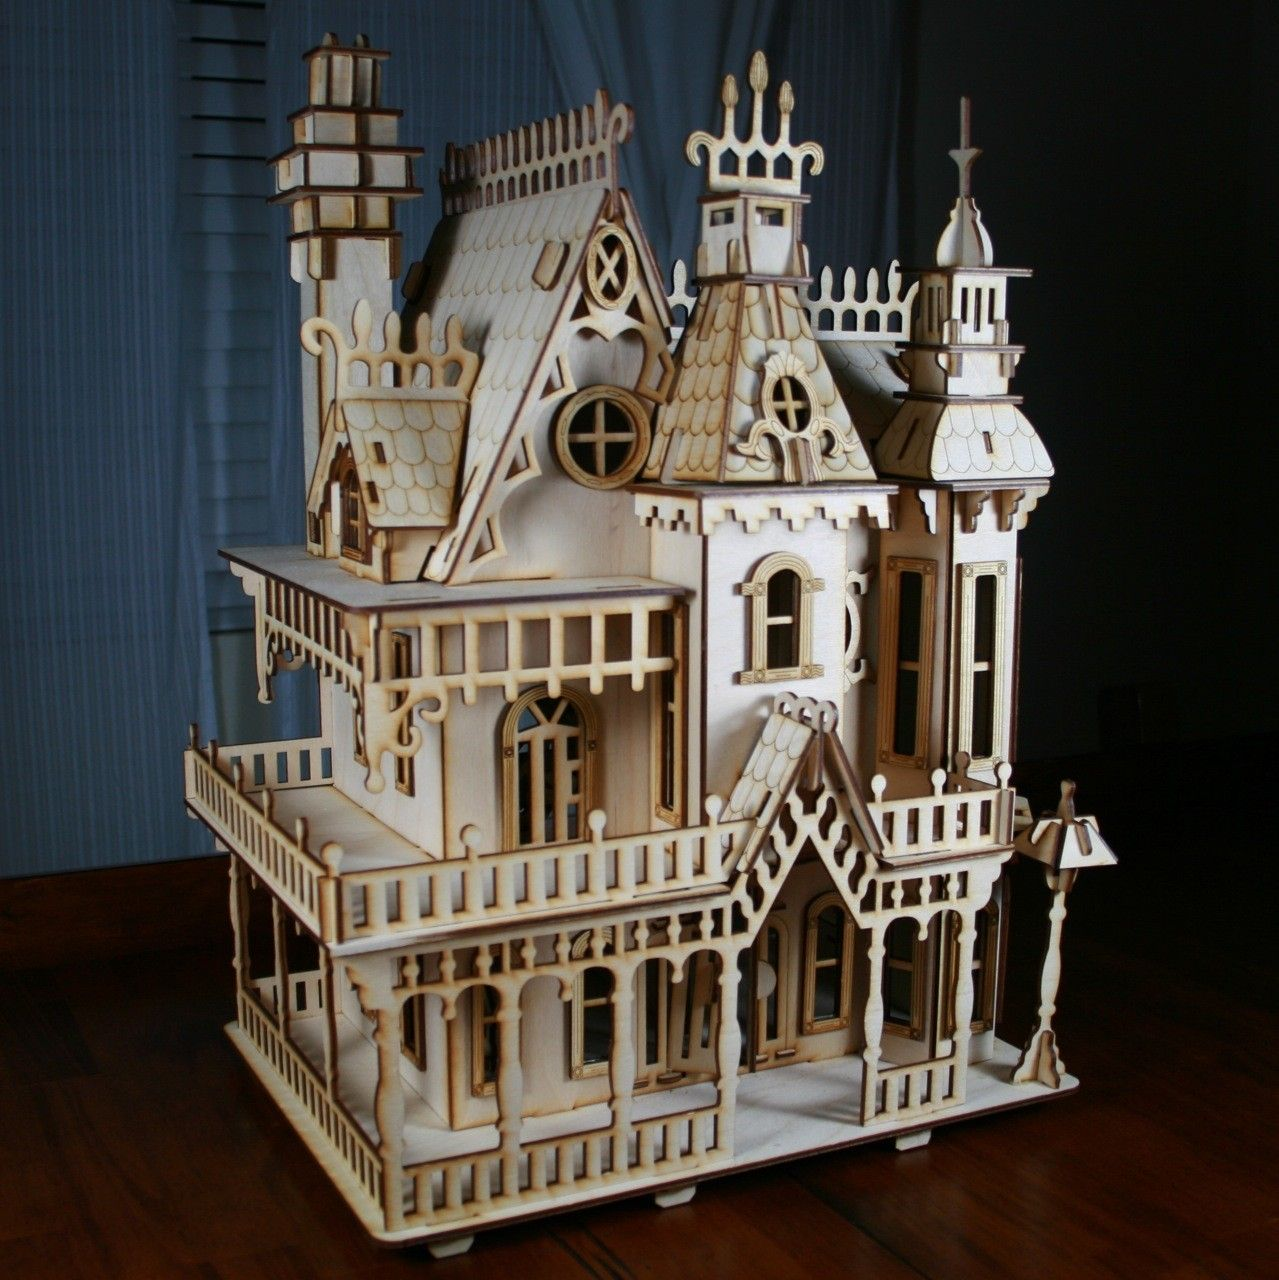 Victorian Doll House Birch plywood Laser Cut Kit I've build two of these already. They're fun, but not exactly stirdy for young children to play with. Had fun with the last two.